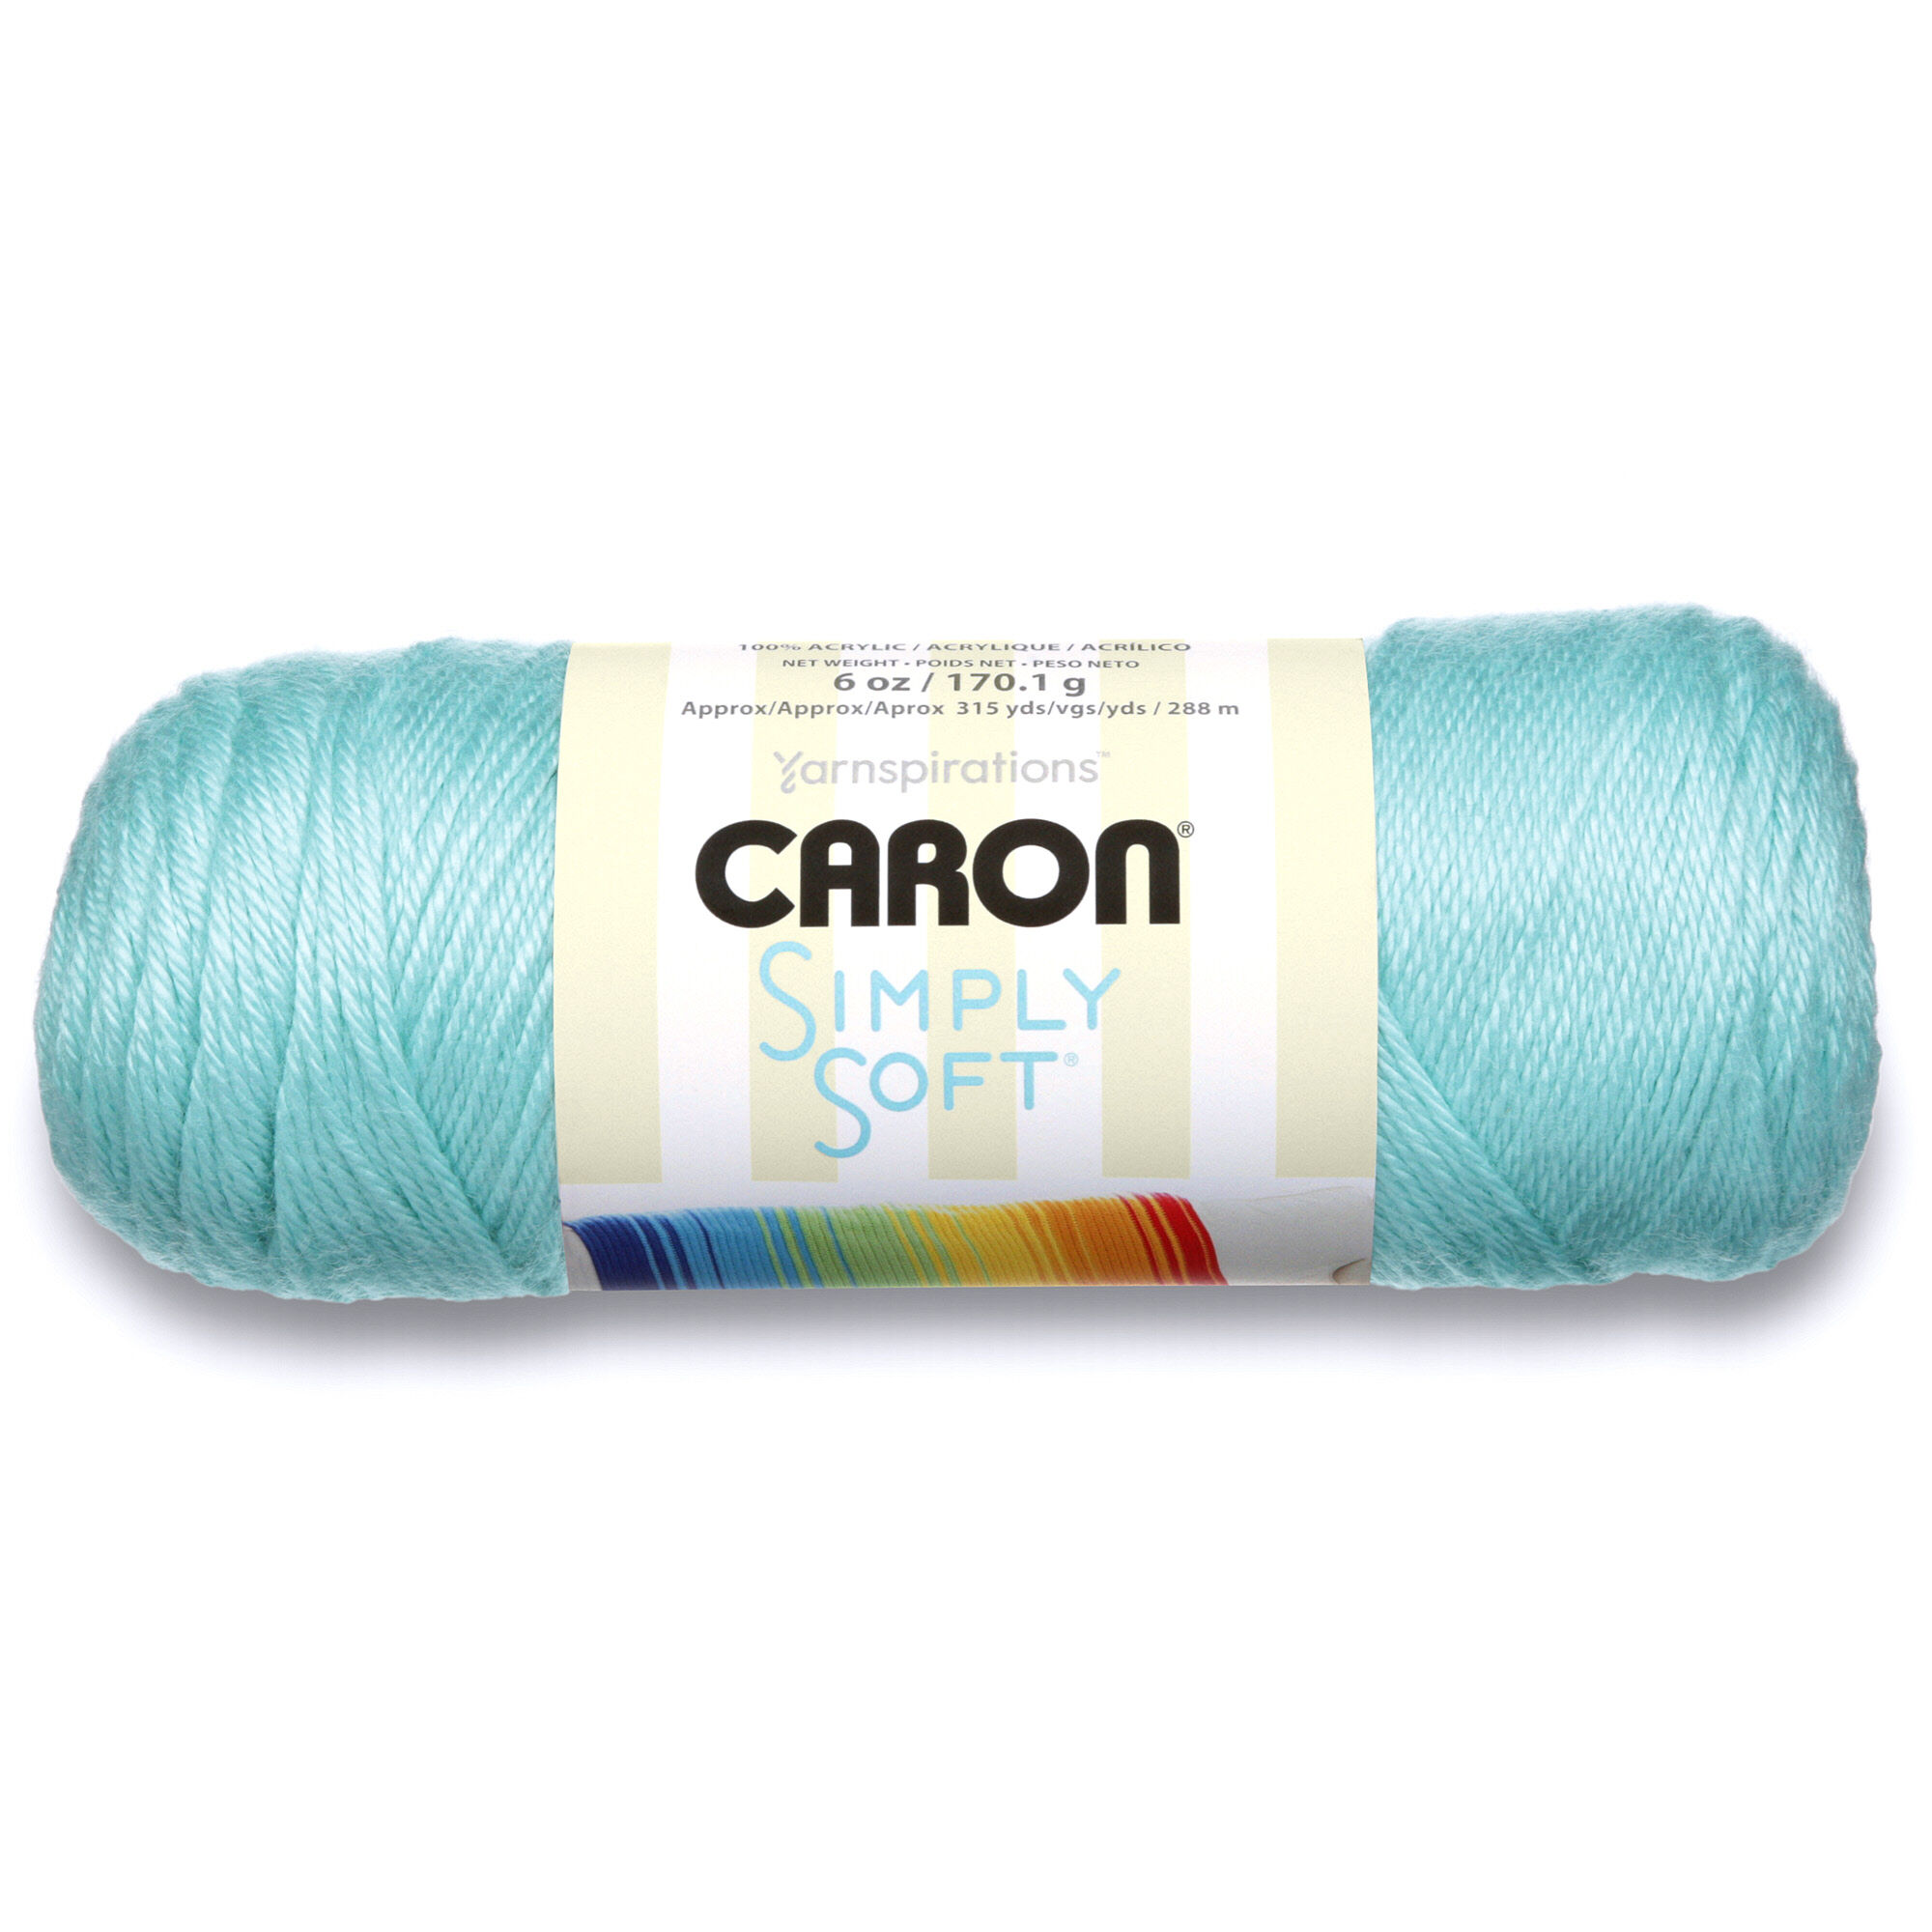 Caron Simply Soft Yarn, Robin's Egg